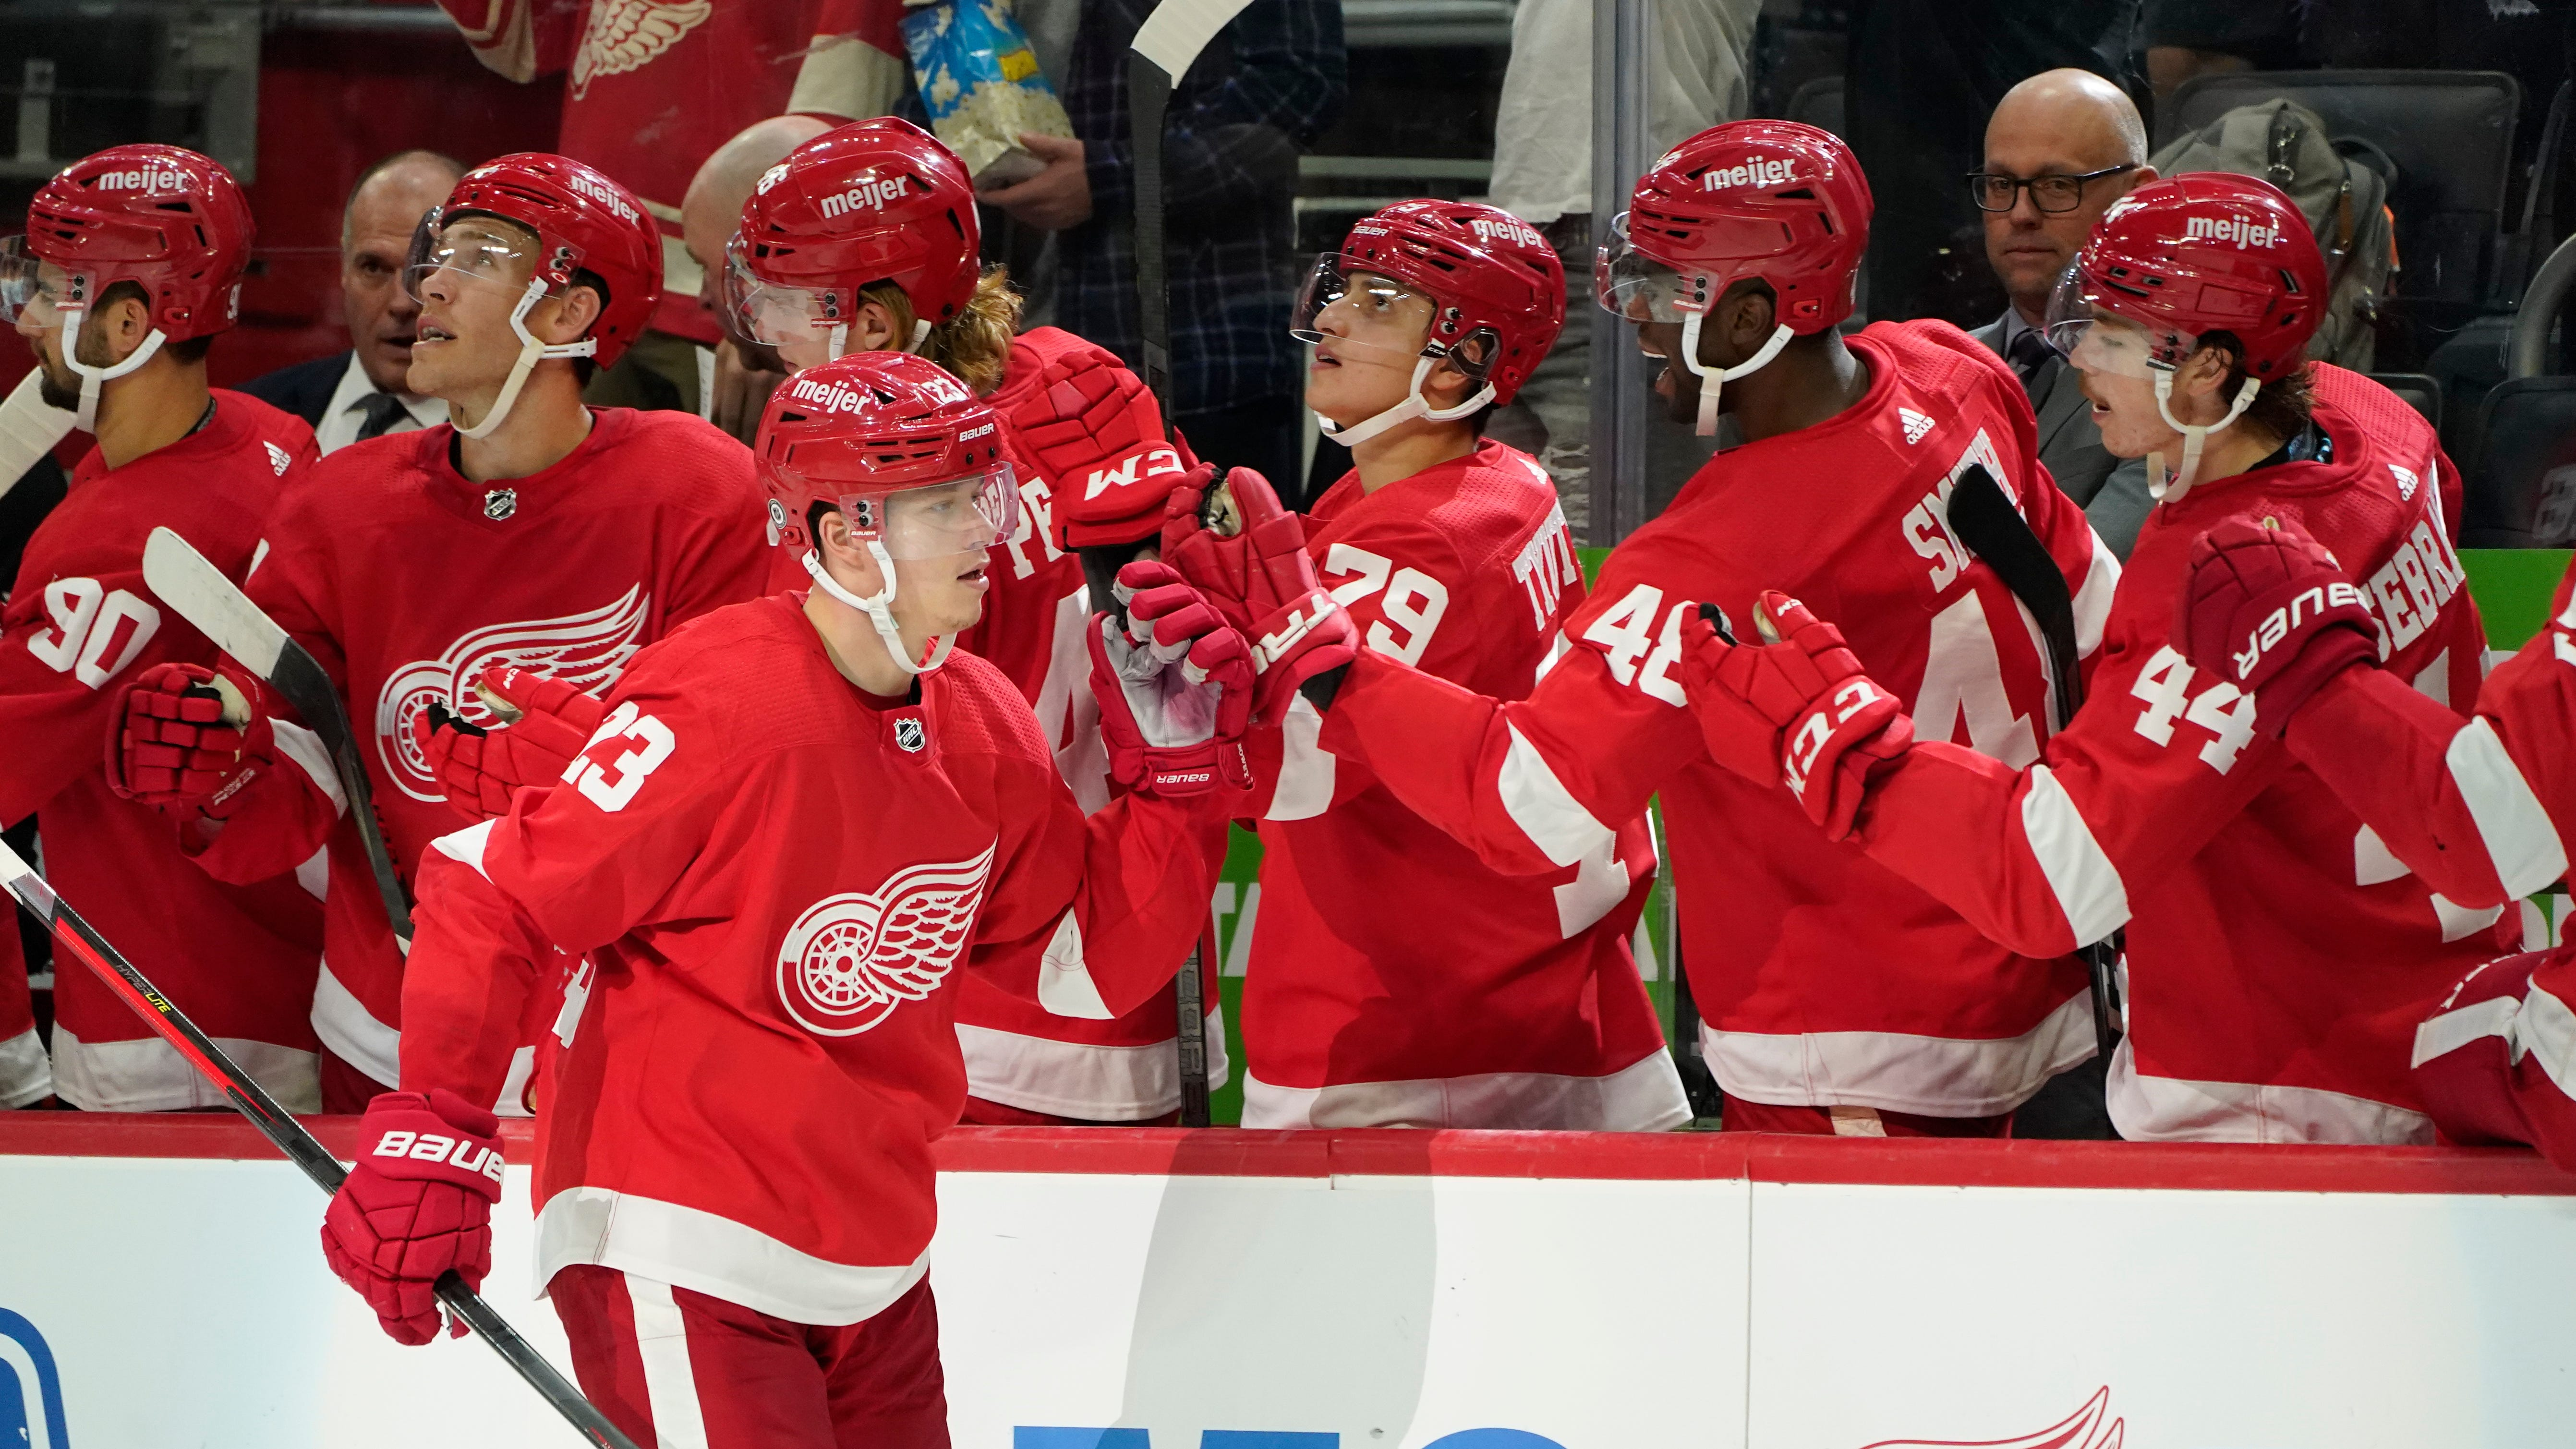 Lucas Raymond on Detroit Red Wings' 23-man roster: Here's who else made the cut